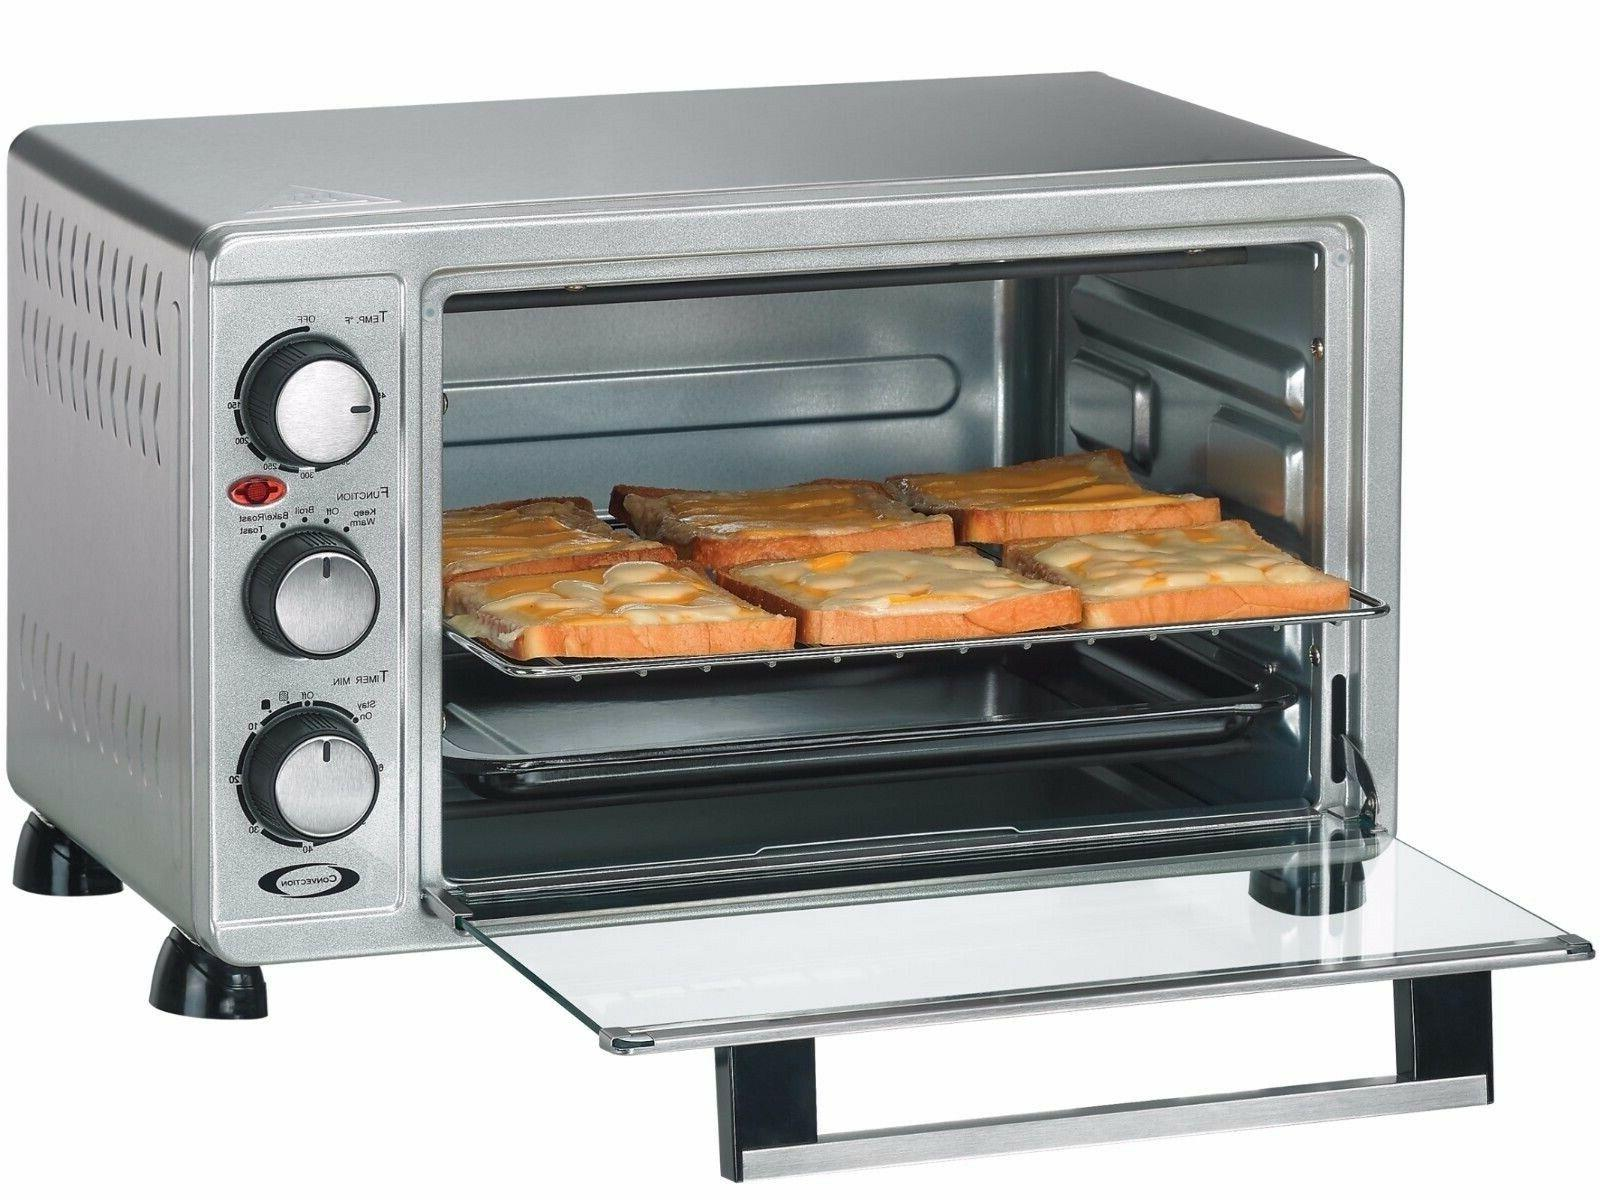 6 slice convection toaster oven and broiler